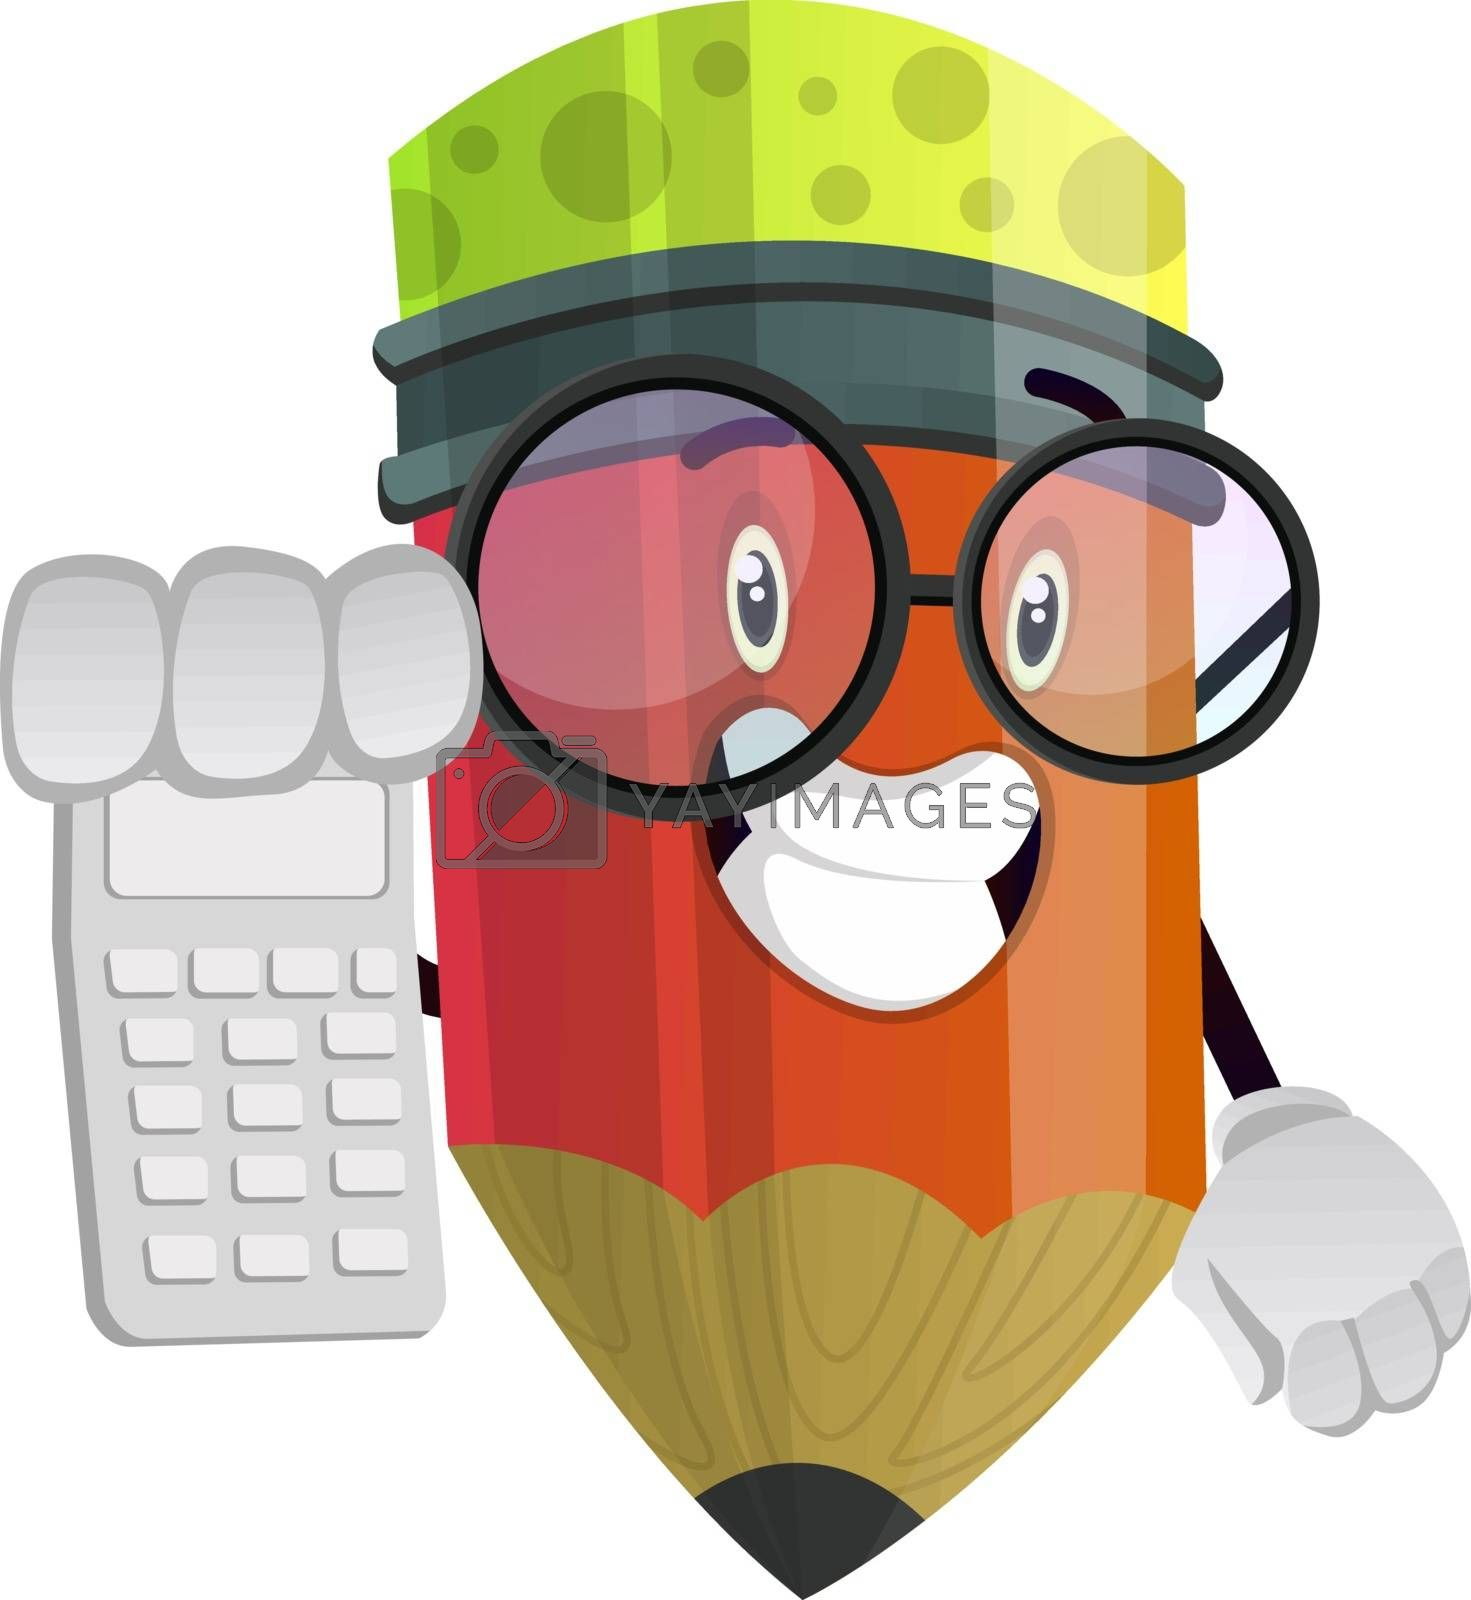 Royalty free image of Red pencil holding calculator in his right hand illustration vec by Morphart